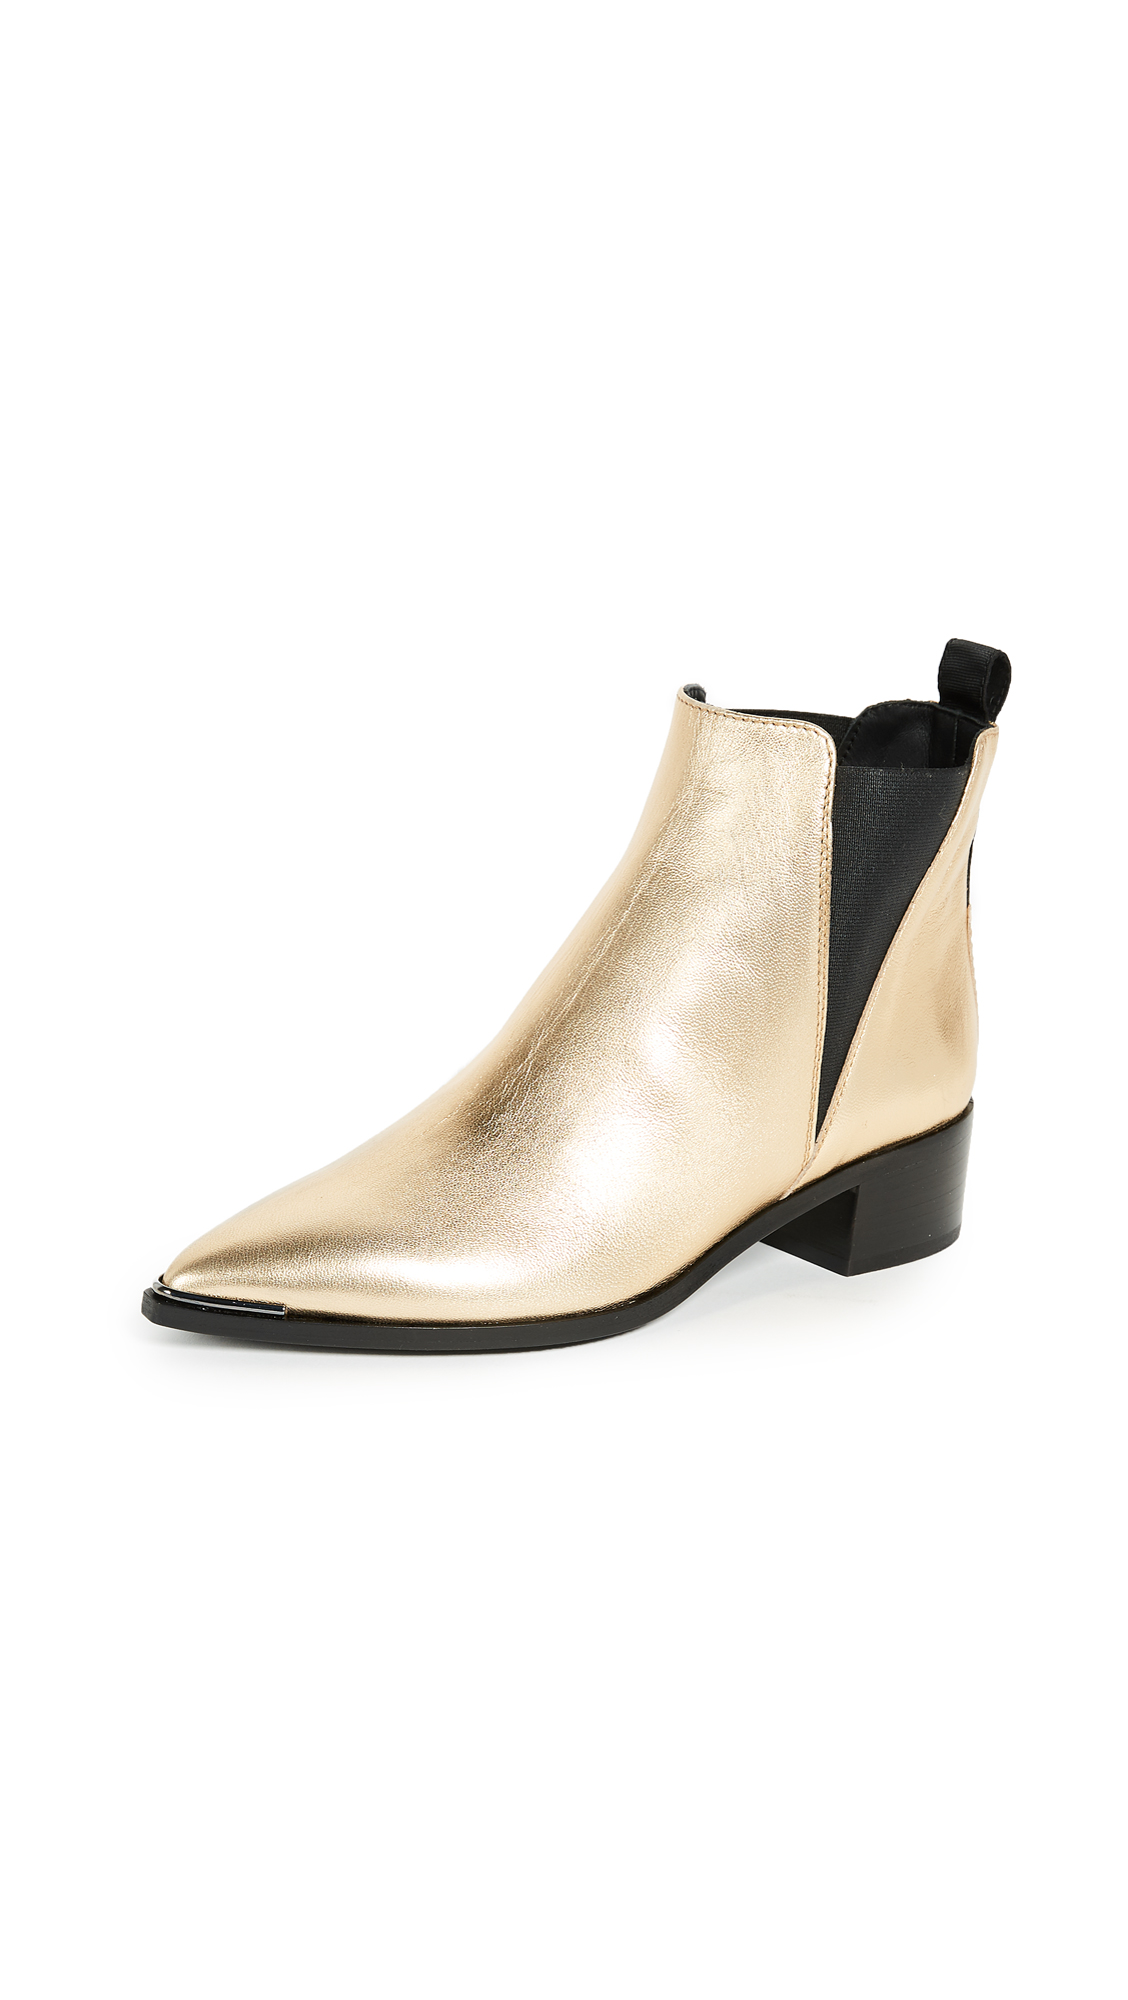 Acne Studios Jensen Booties - Gold